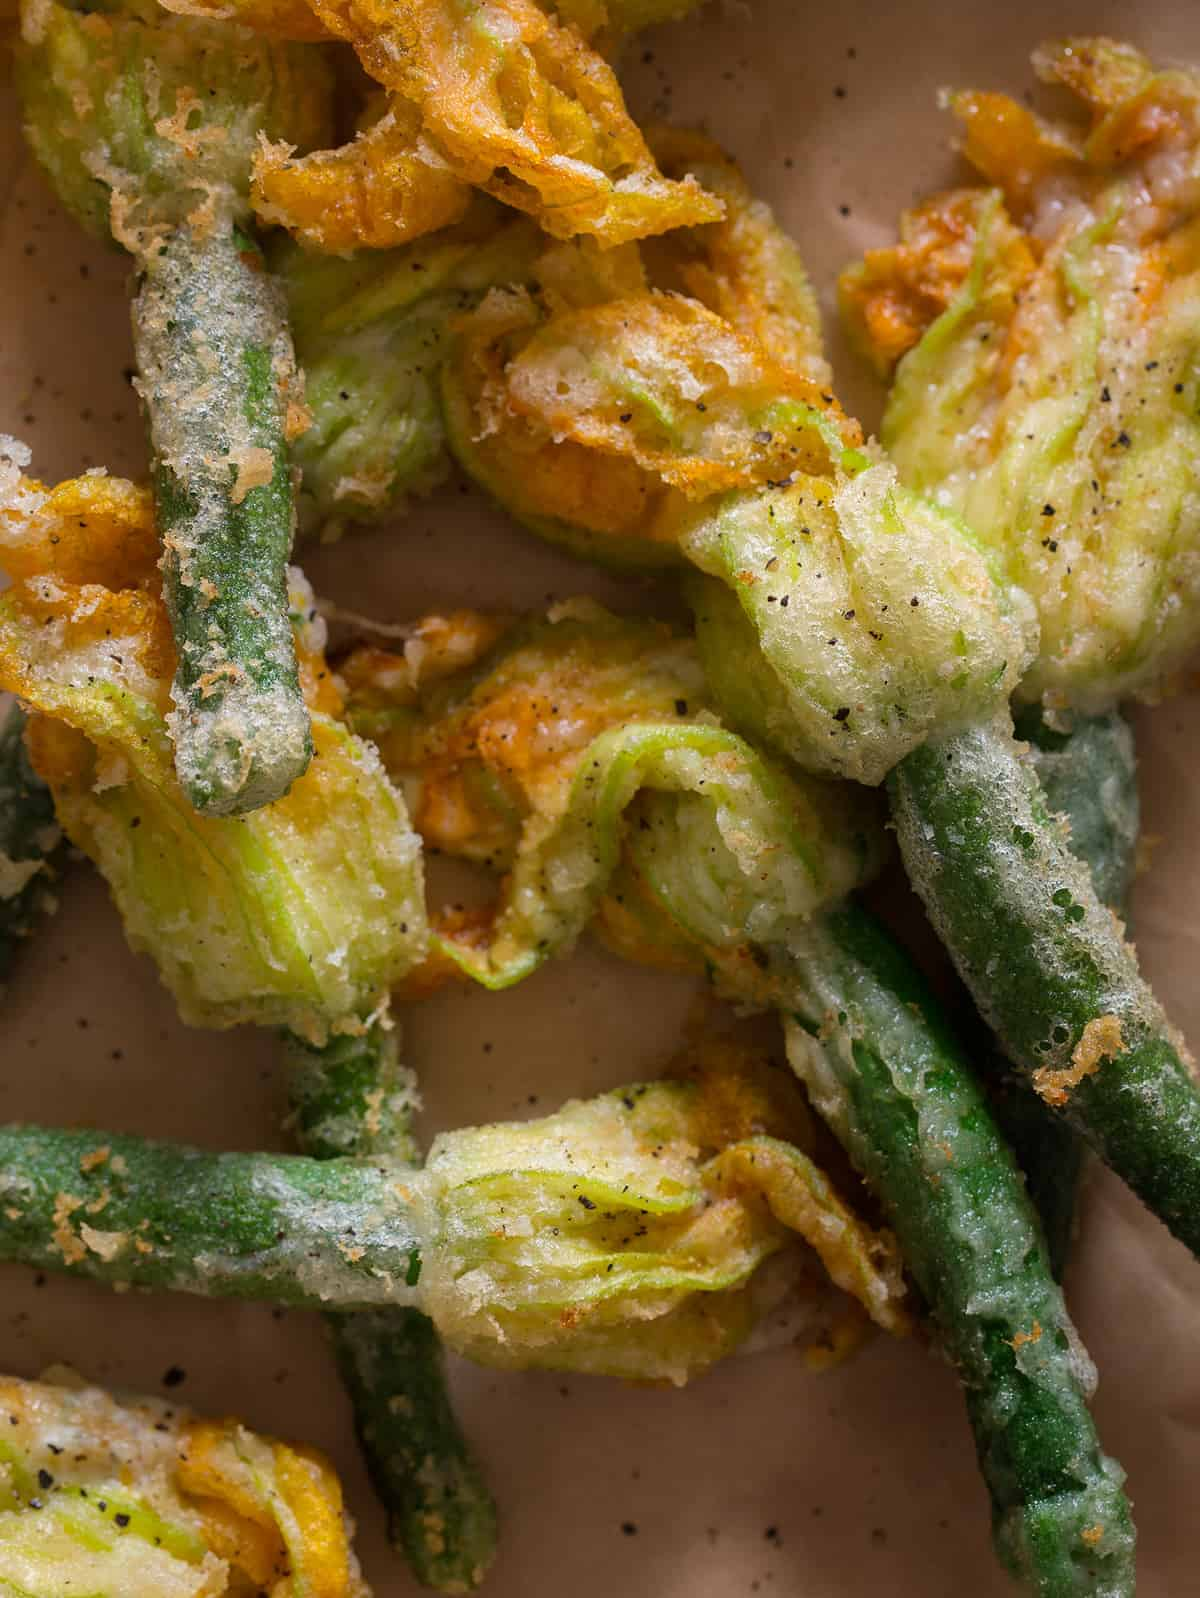 A close up of stuffed and fried squash blossoms.